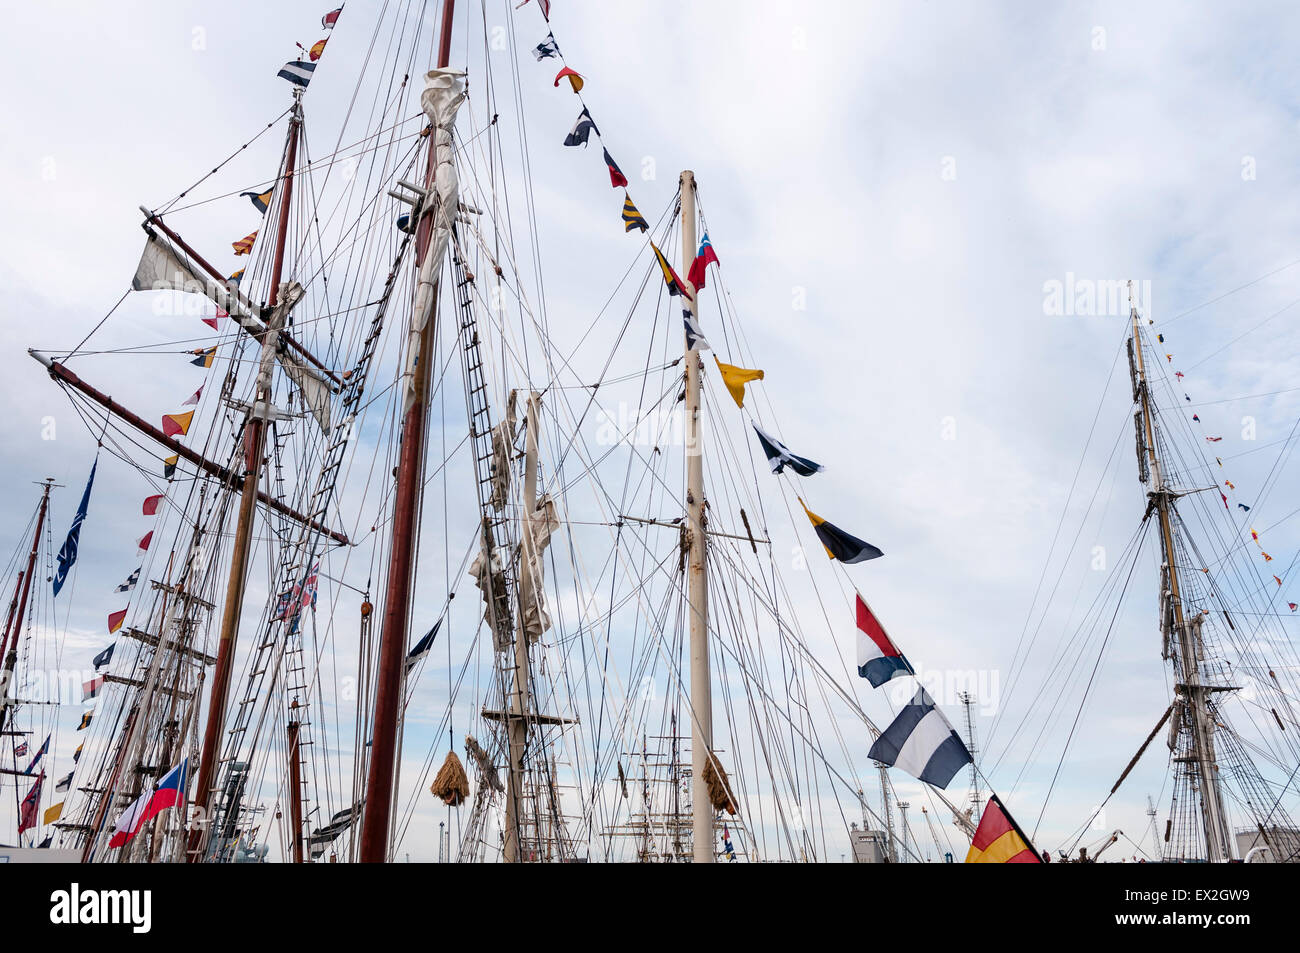 Masts and rigging from a number of Tall Ships - Stock Image